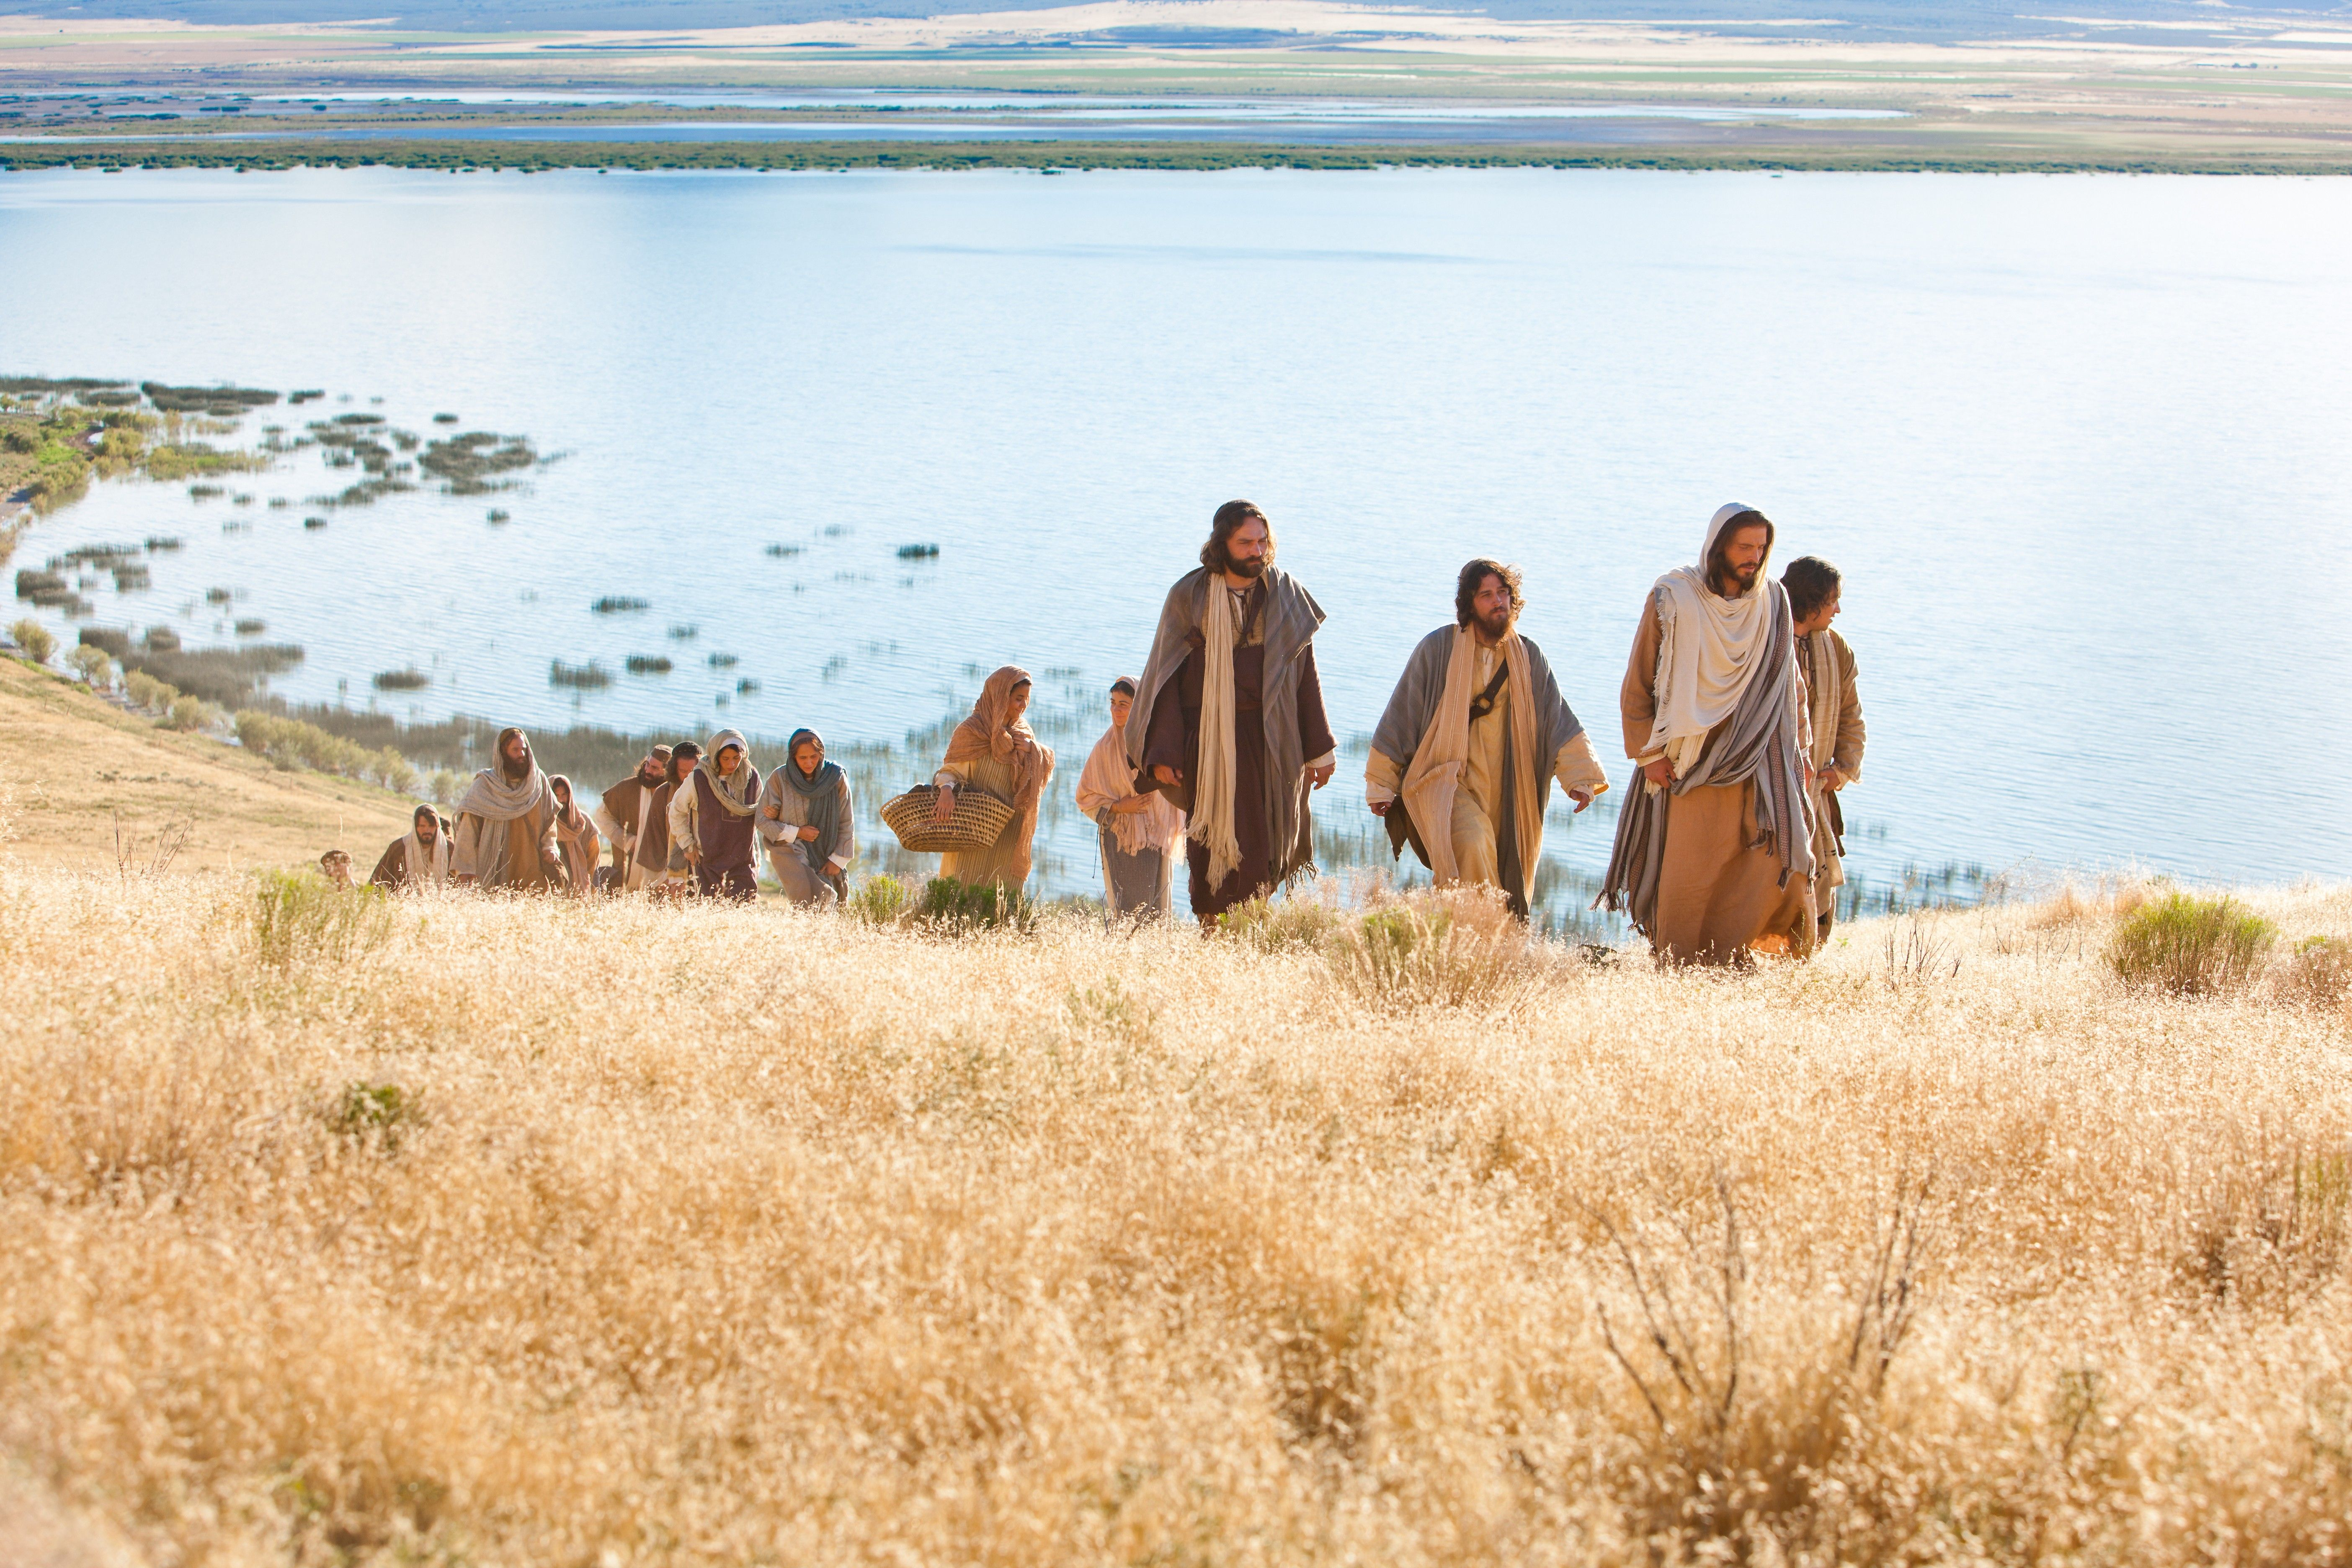 Men and women gather to come listen to Jesus as He gives His Sermon on the Mount.